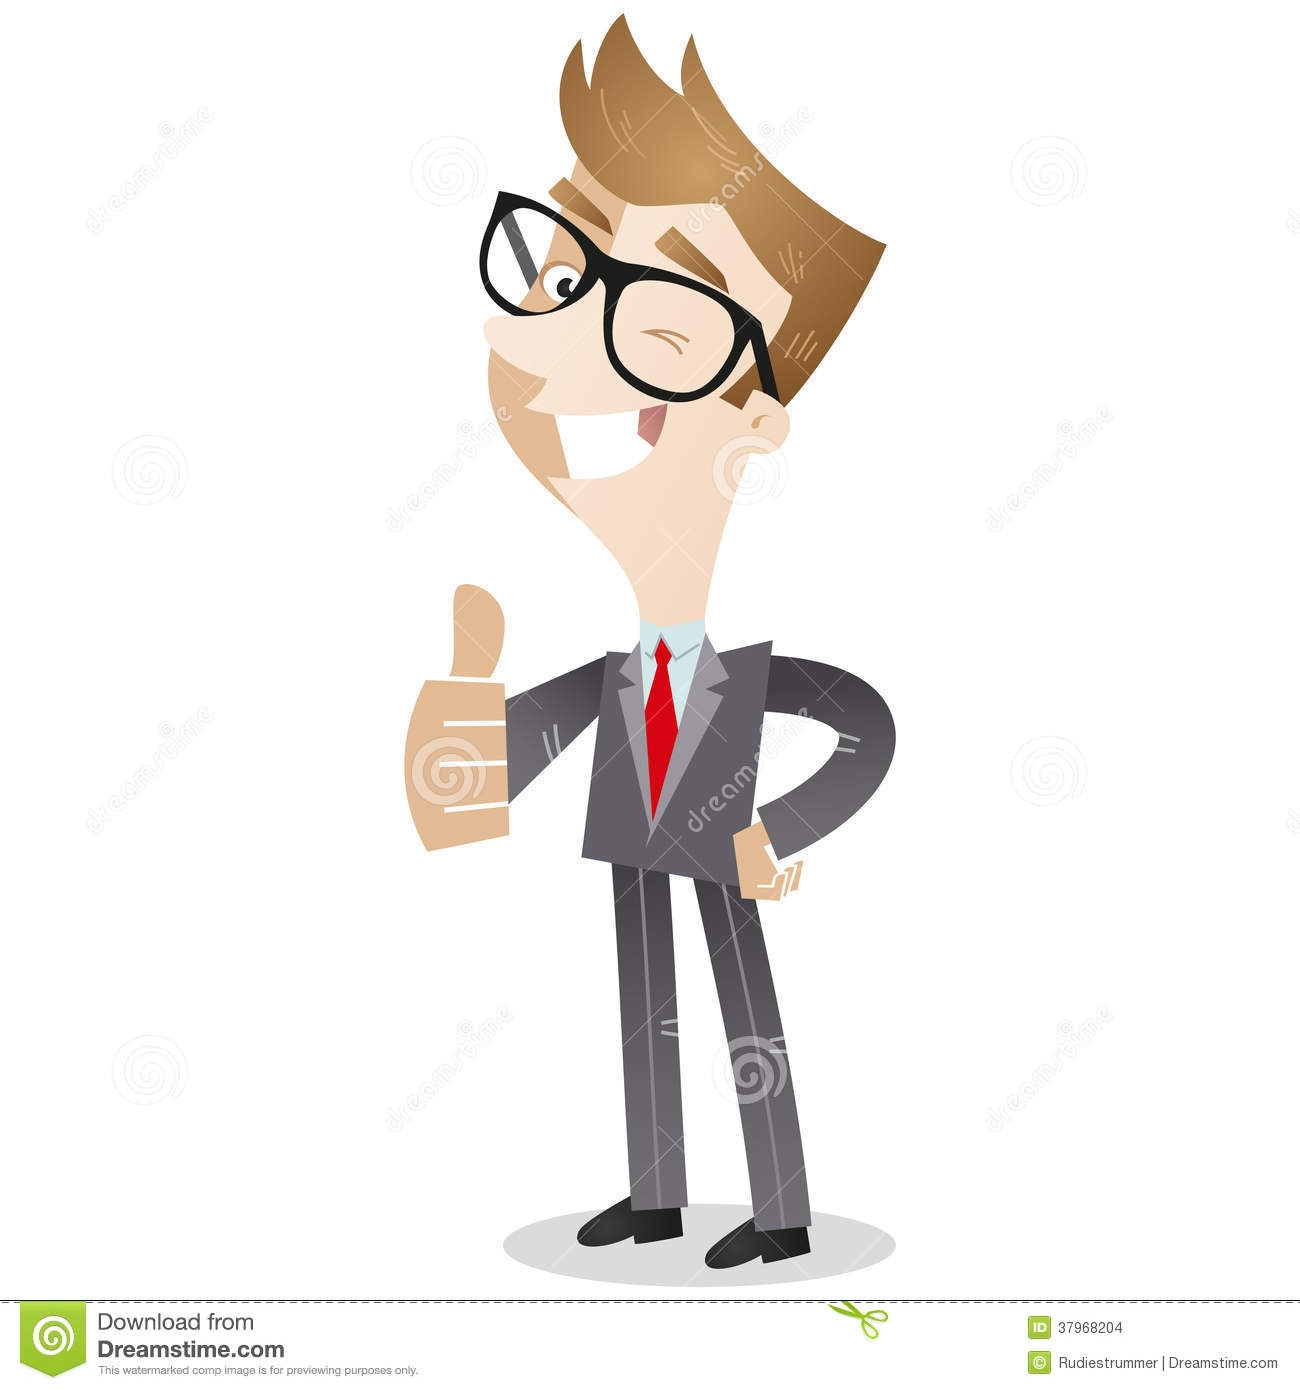 Man with thumbs up clipart.